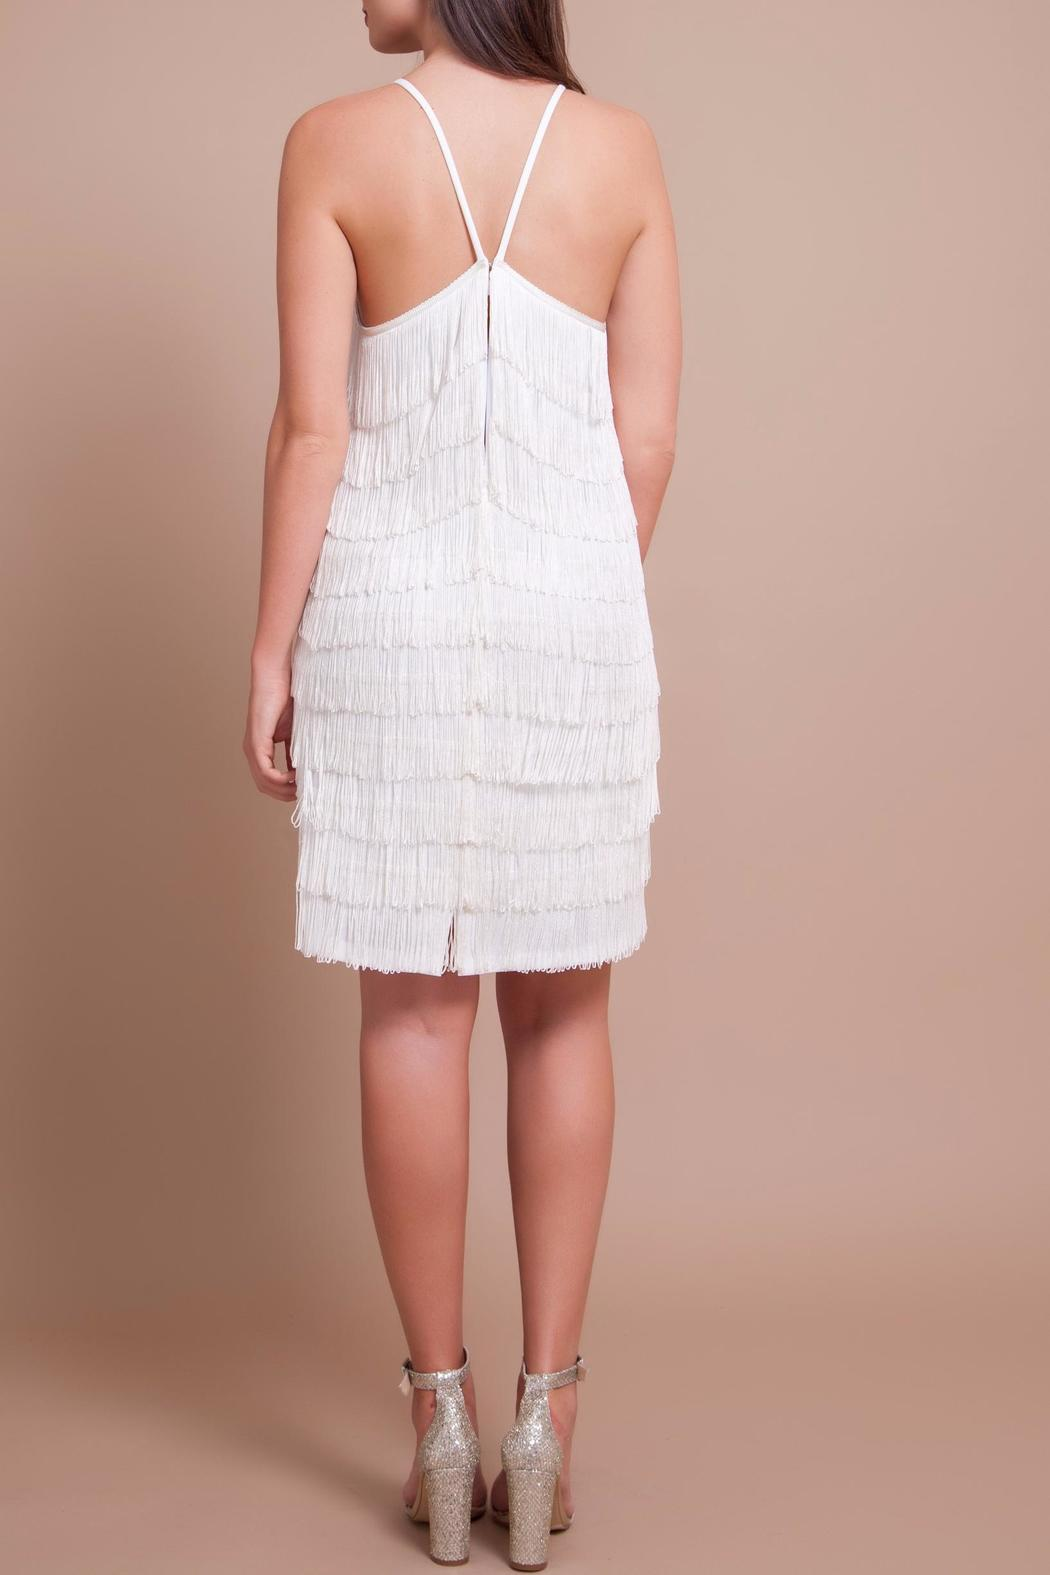 Banot By Loulou Liam White Fringe Dress Front Full Image